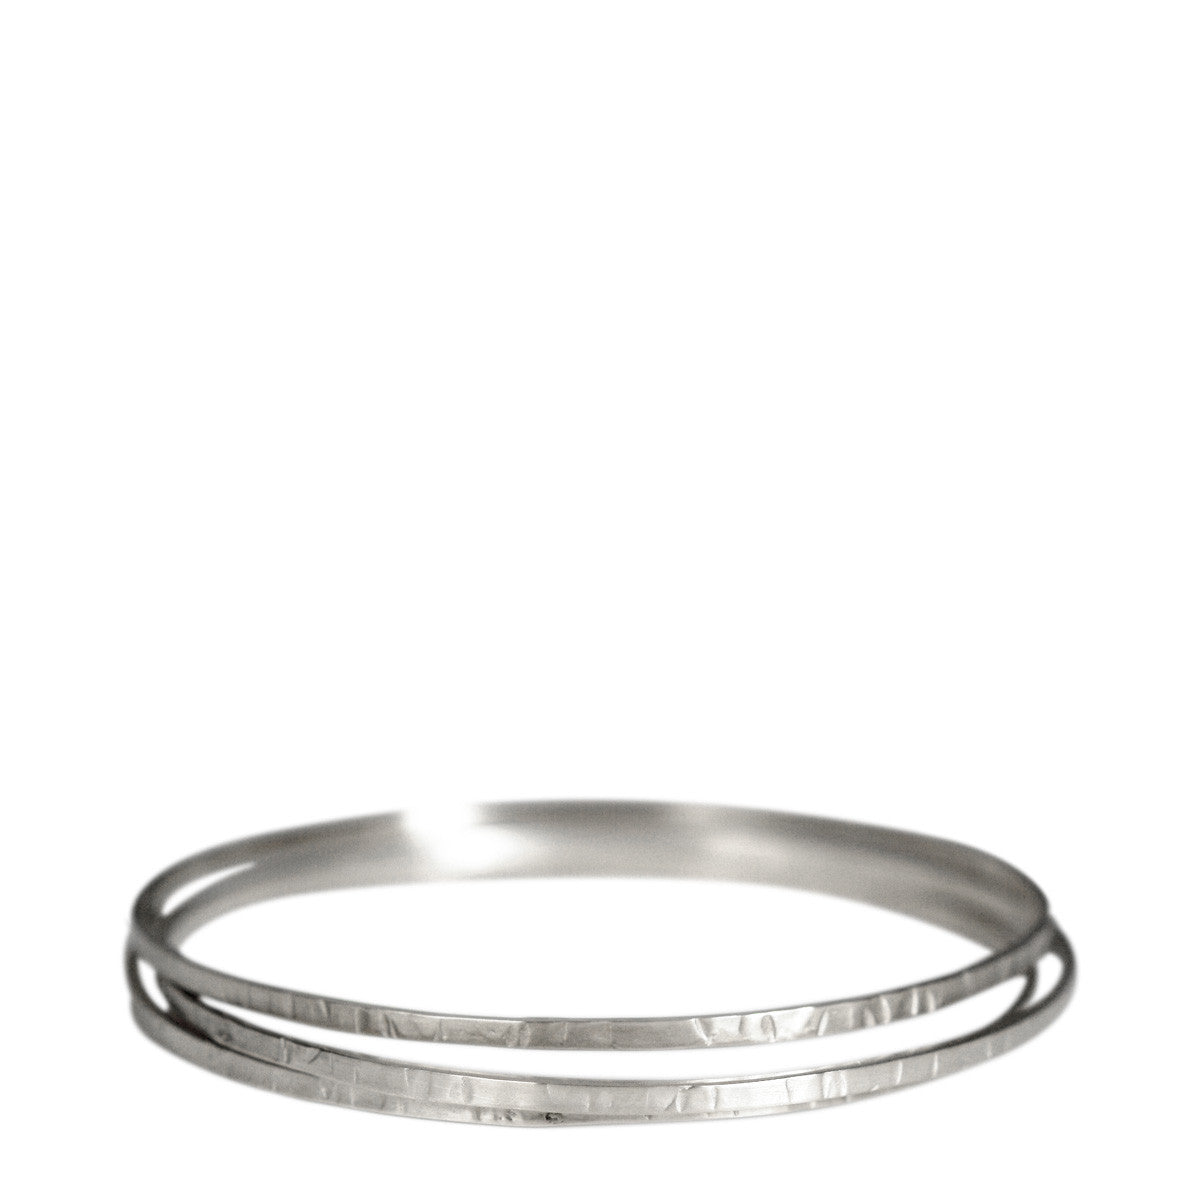 Sterling Silver Flattened Bangles (Set of 3)